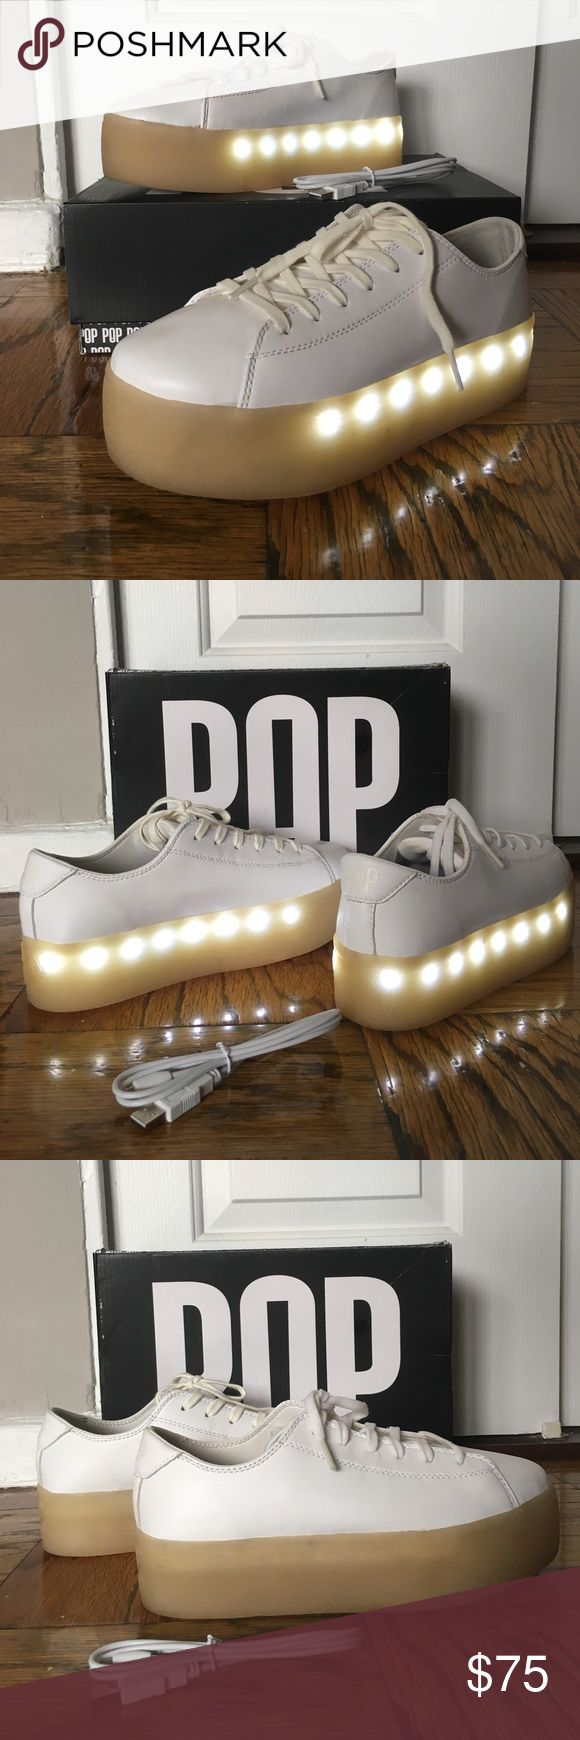 """POP Drummond Light Up Platform Sneakers """"The Drummond speaks for itself, the shoe that lifts you up will also light you up. Plus, like all POP Shoes, the Drummond features rechargeable LED lights that turn on and off, and have three settings: fast flash, slow flash and continuous. Our collection of light up sneakers come with a dual-charging micro USB cable so you can charge them!"""" - I couldn't find my size so I bought a size up (9). I wore them once with 2 pairs of socks and insoles but…"""